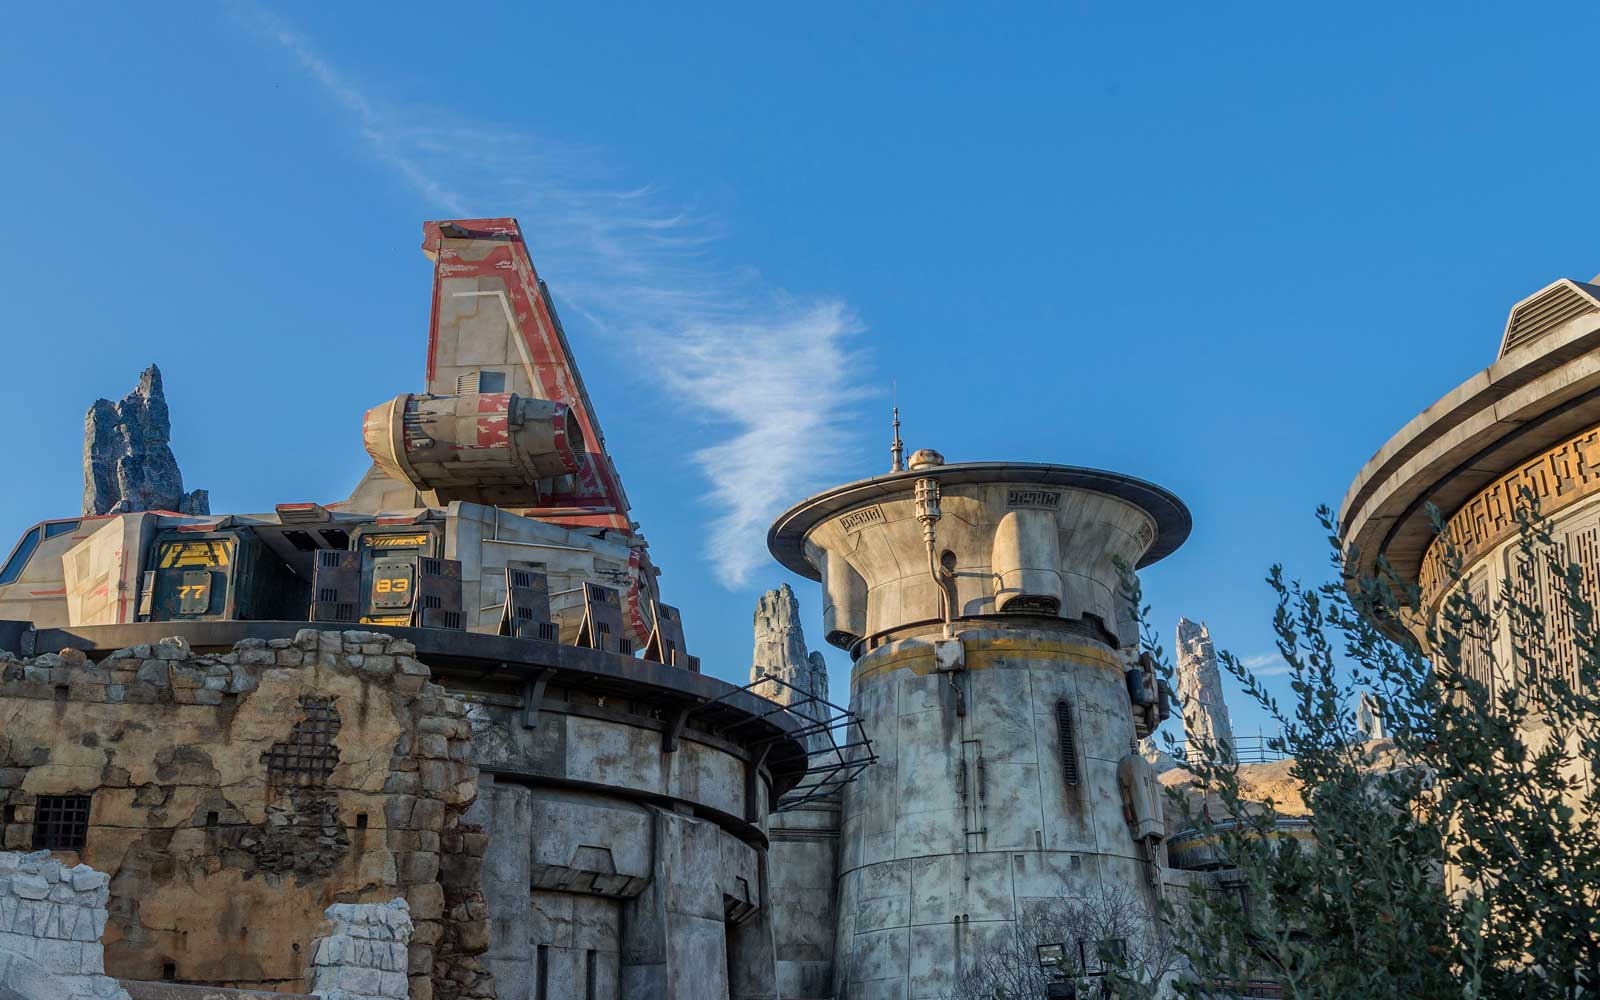 Star Wars Land Will Serve Blue Milk, Endorian Chickens — and You Won't Guess What Else